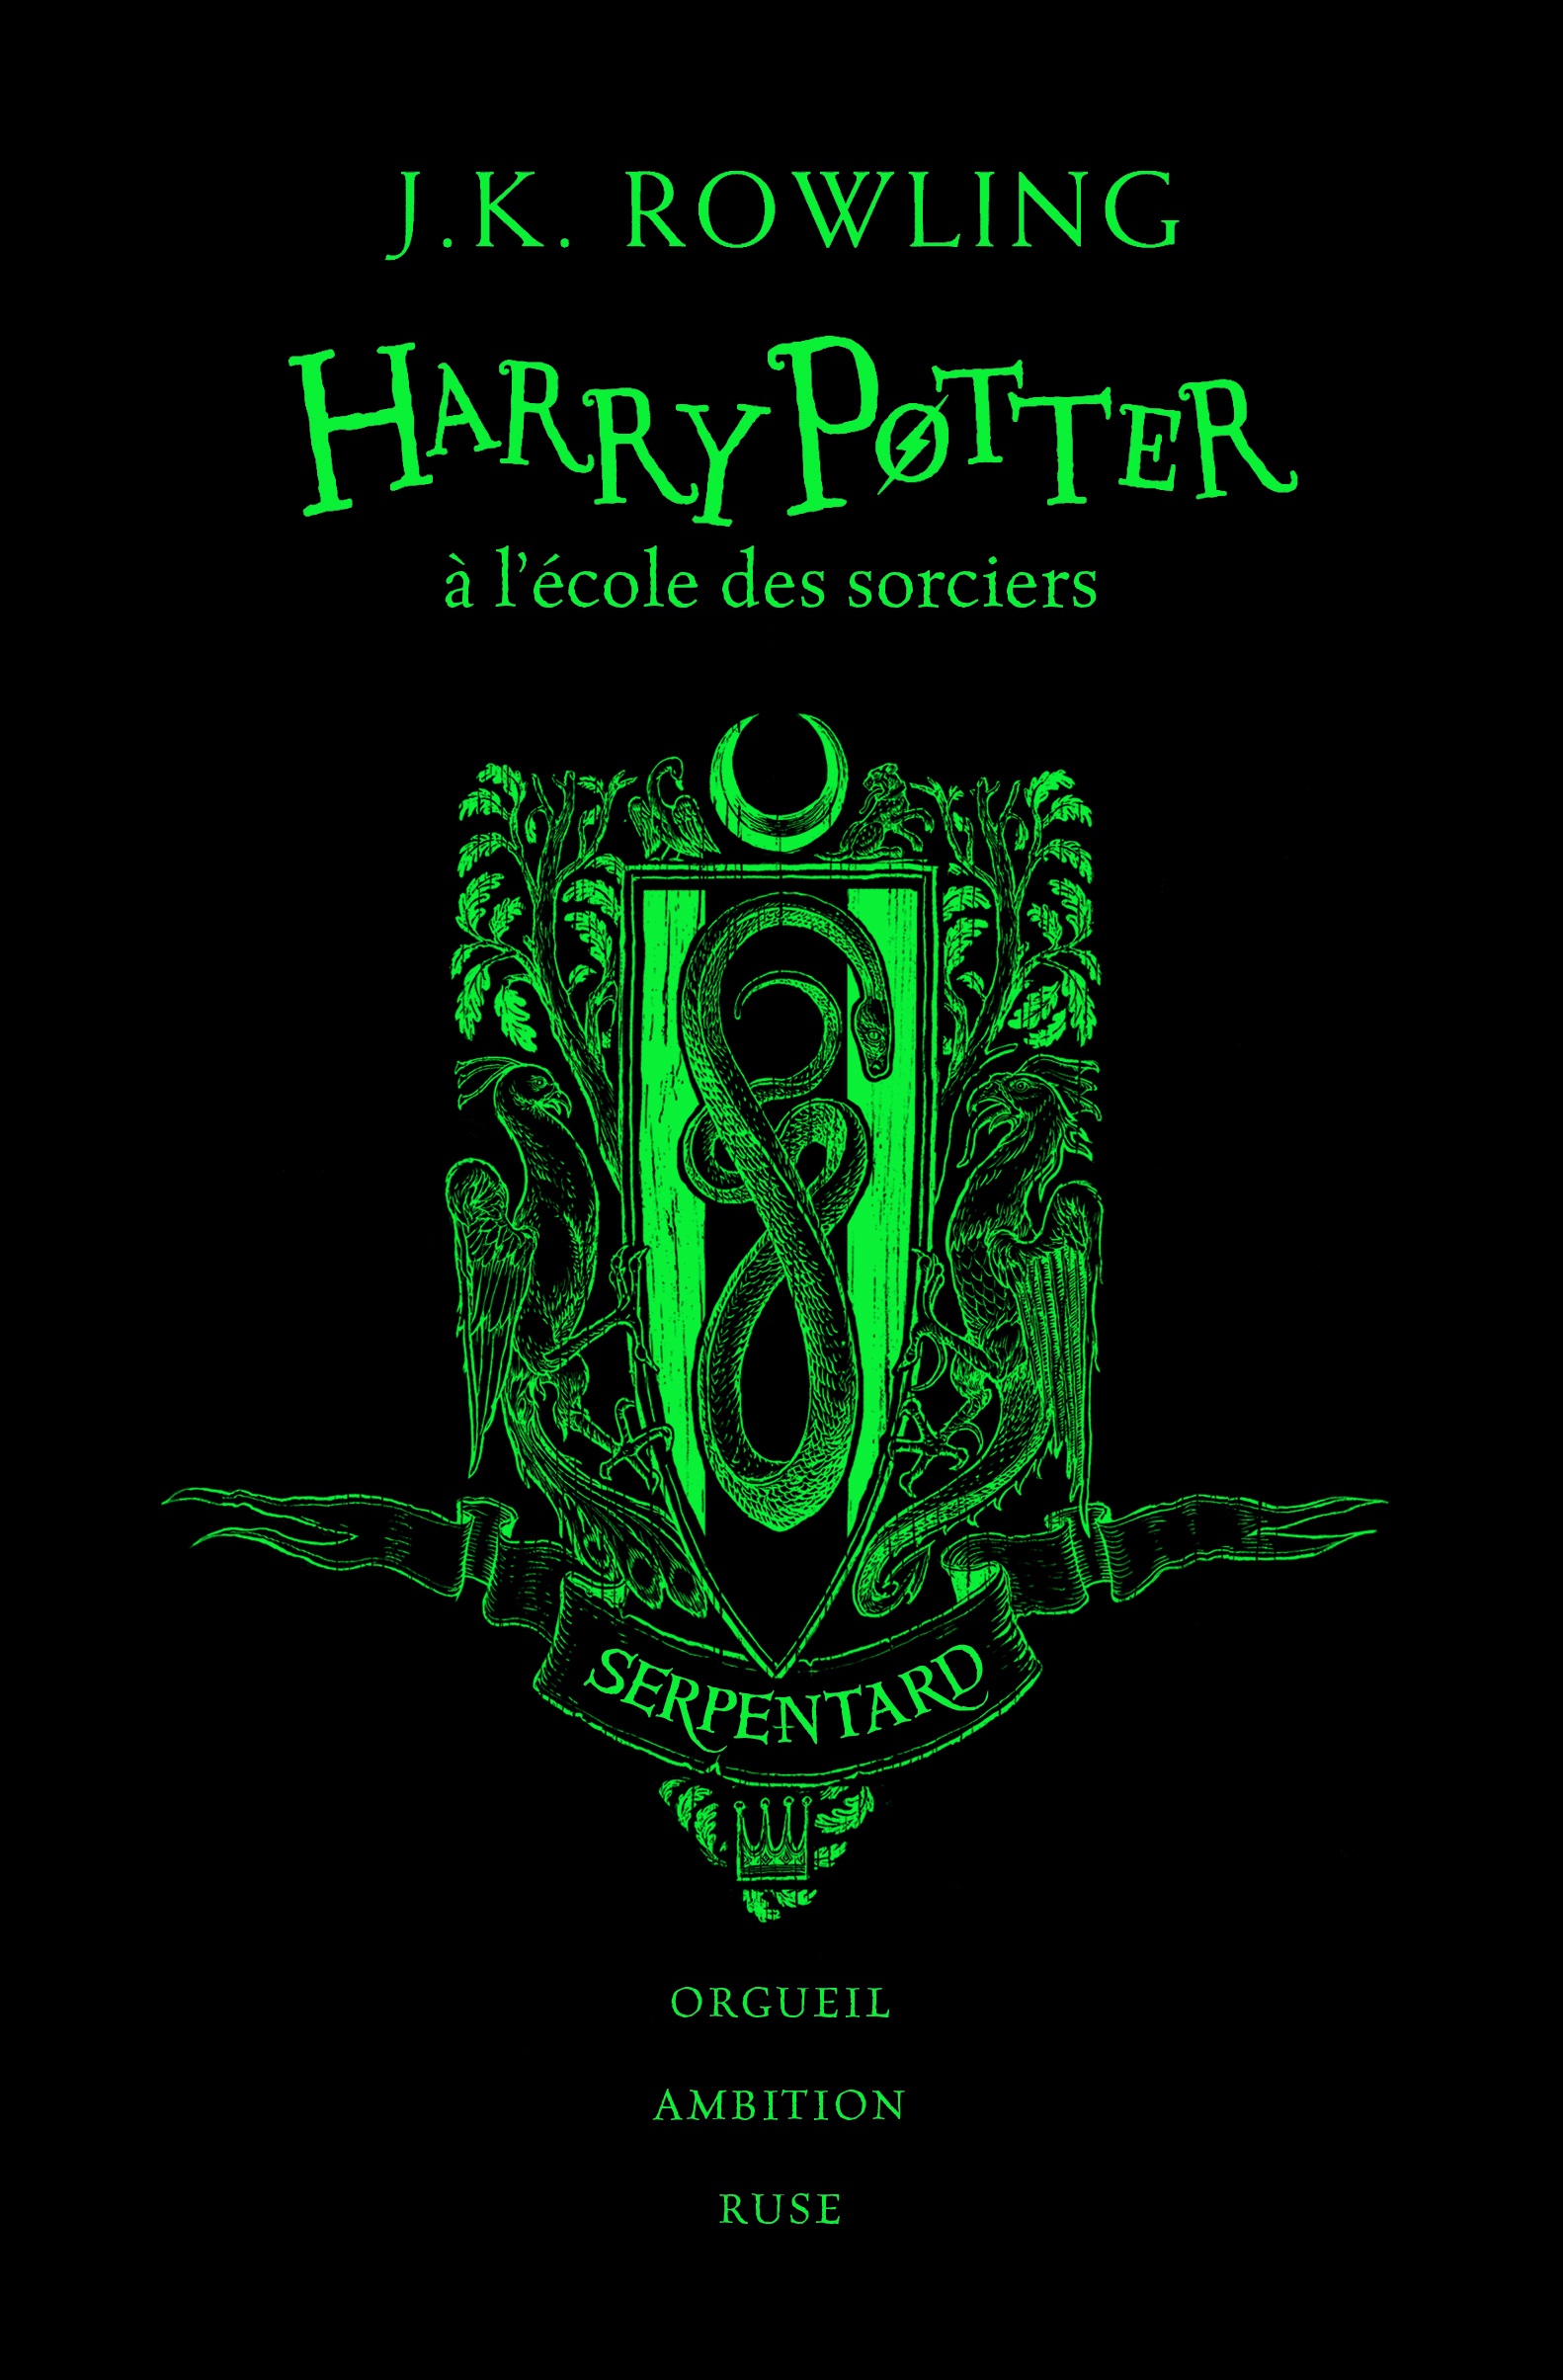 HARRY POTTER A L'ECOLE DES SORCIERS - SERPENTARD